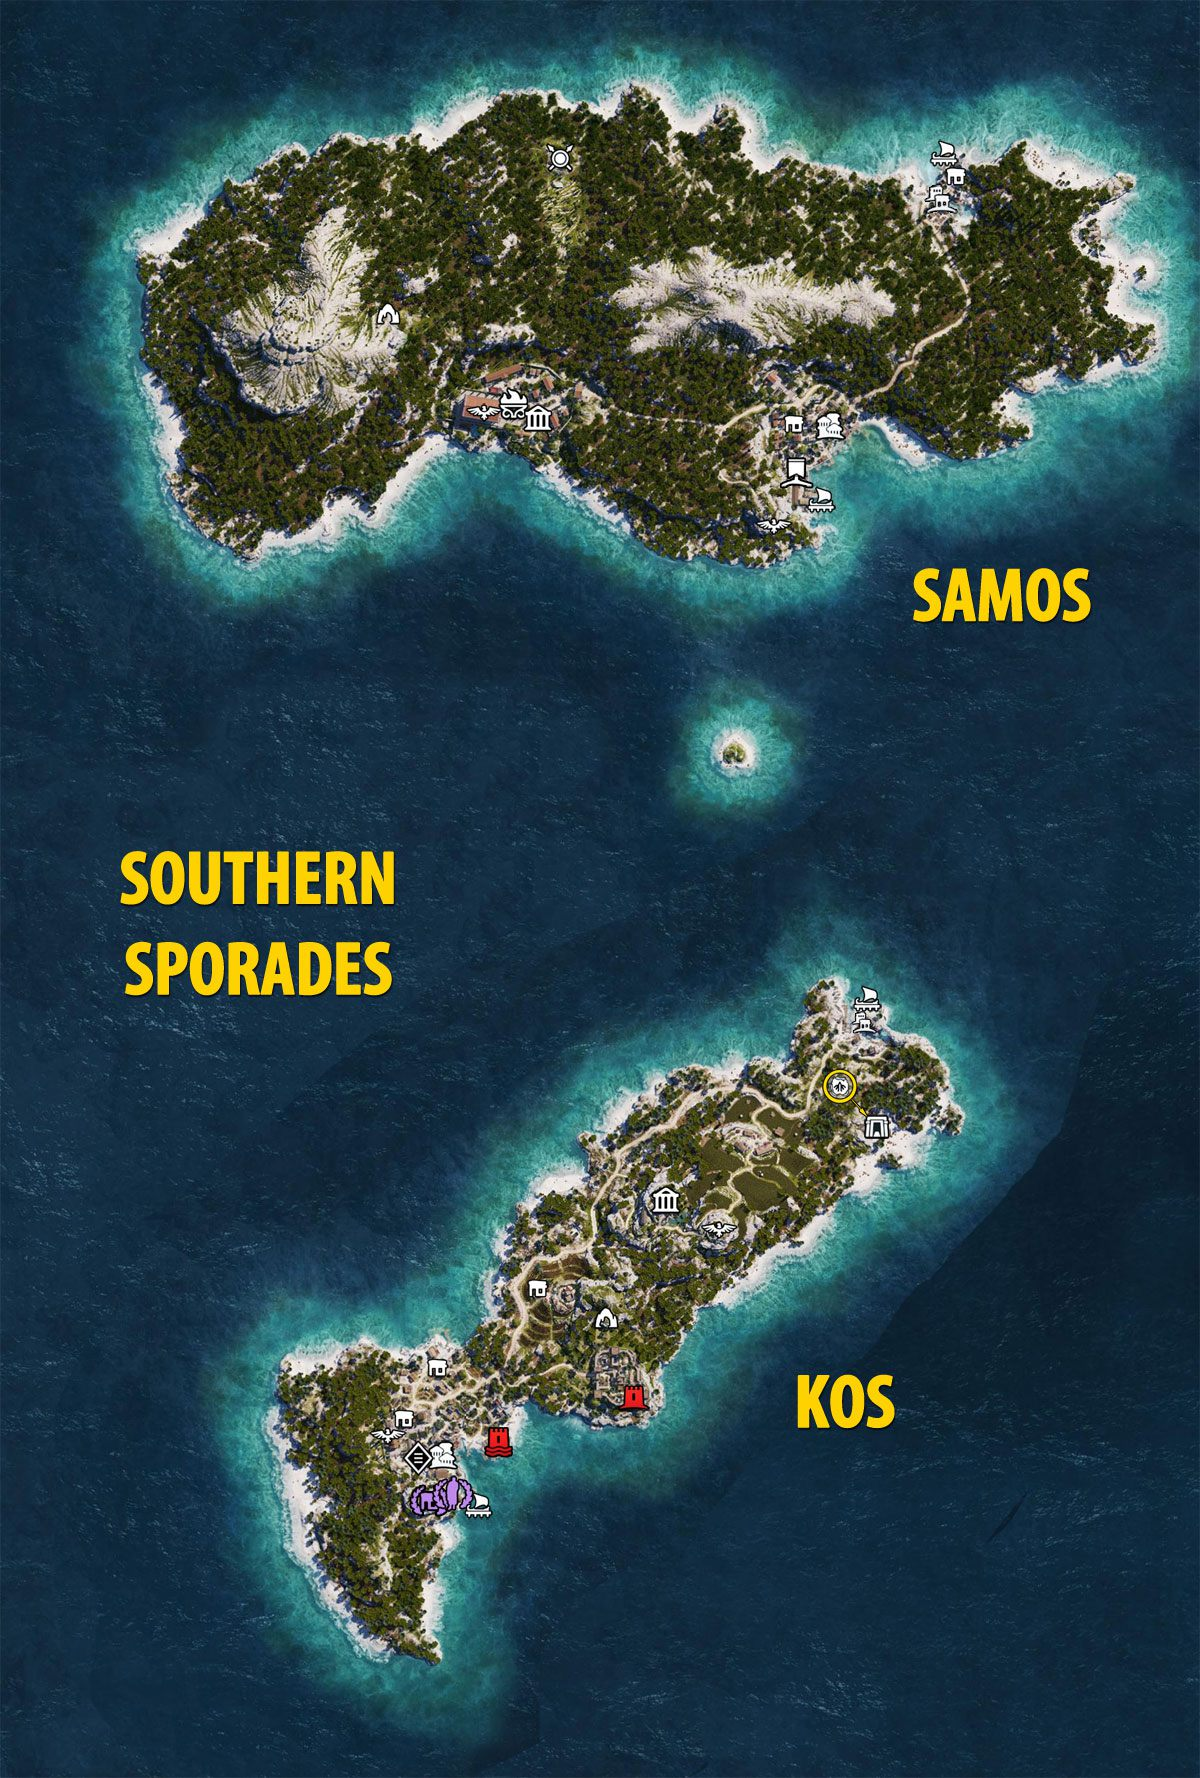 Southern Sporades - Assassin's Creed Odyssey